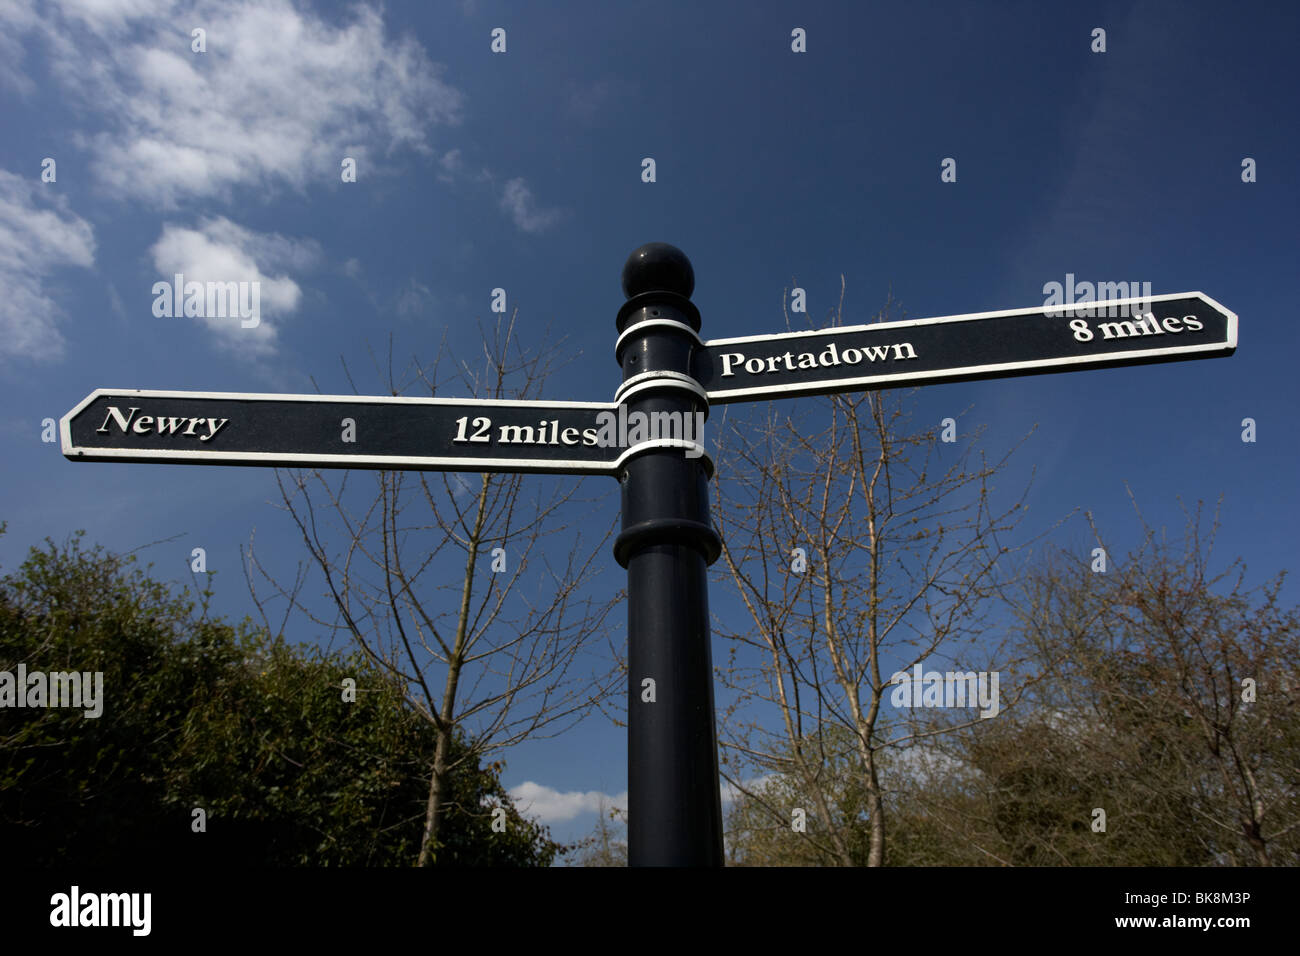 old waypoint signpost on the newry portadown canal in scarva village county down northern ireland uk - Stock Image